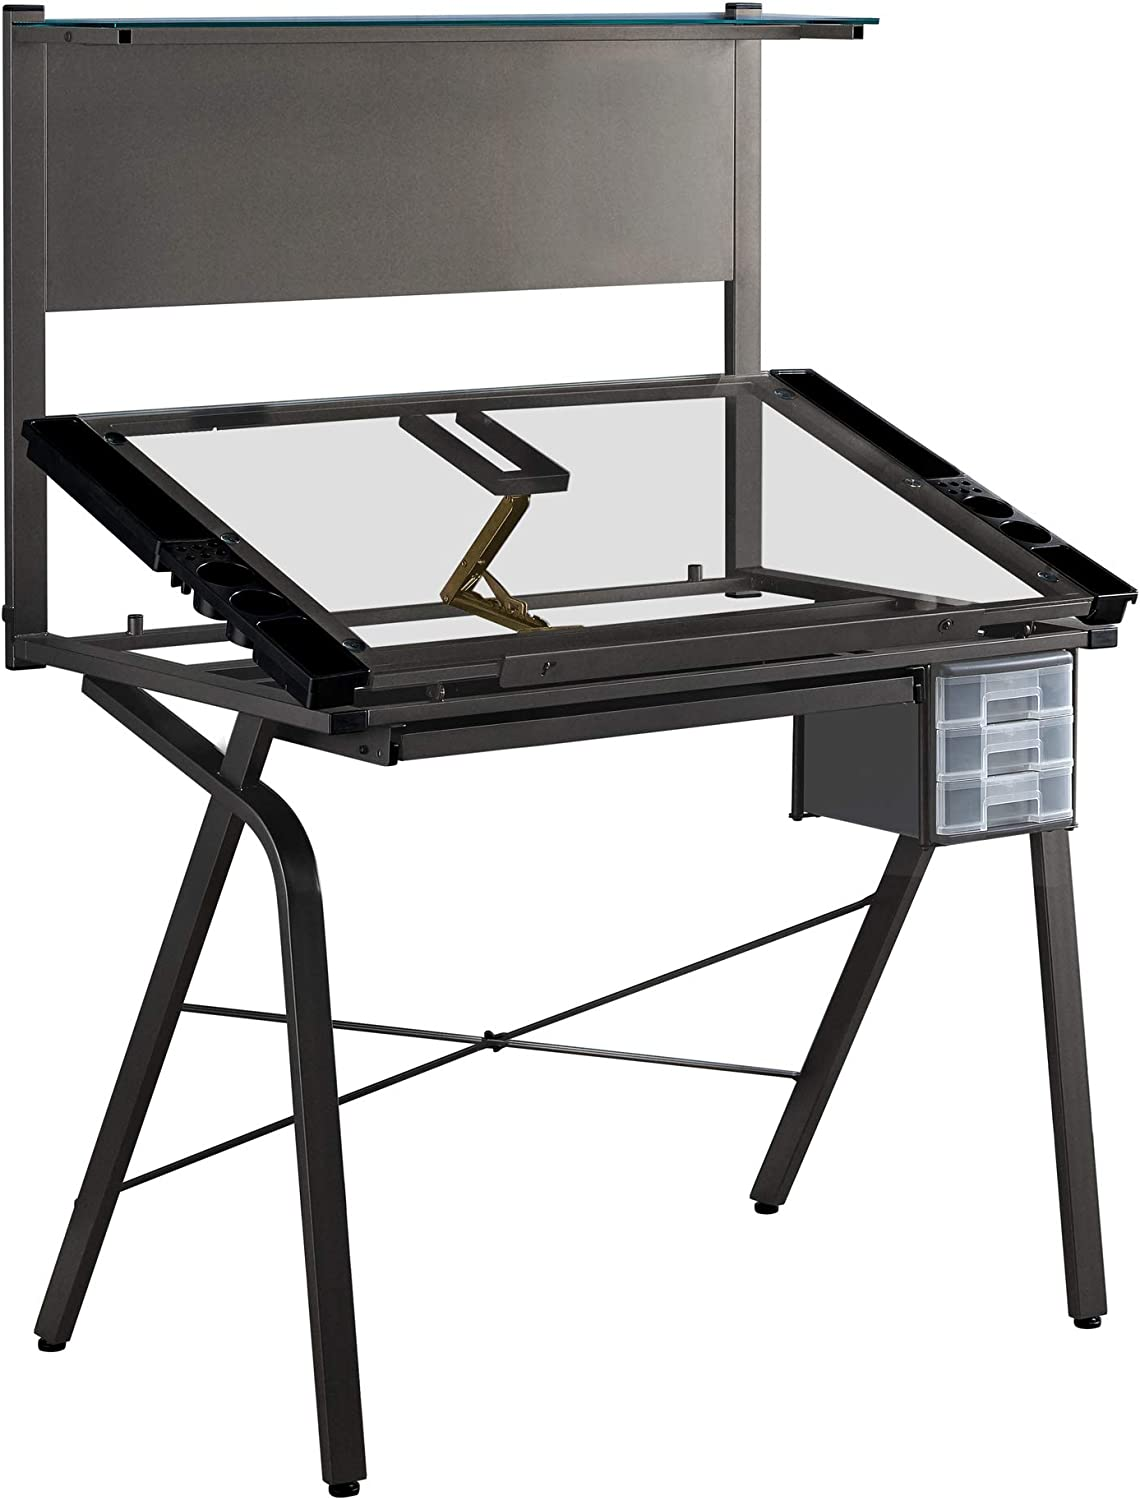 Monarch Limited Very popular price Specialties Contemporary Multi-Functional Tem Adjustable